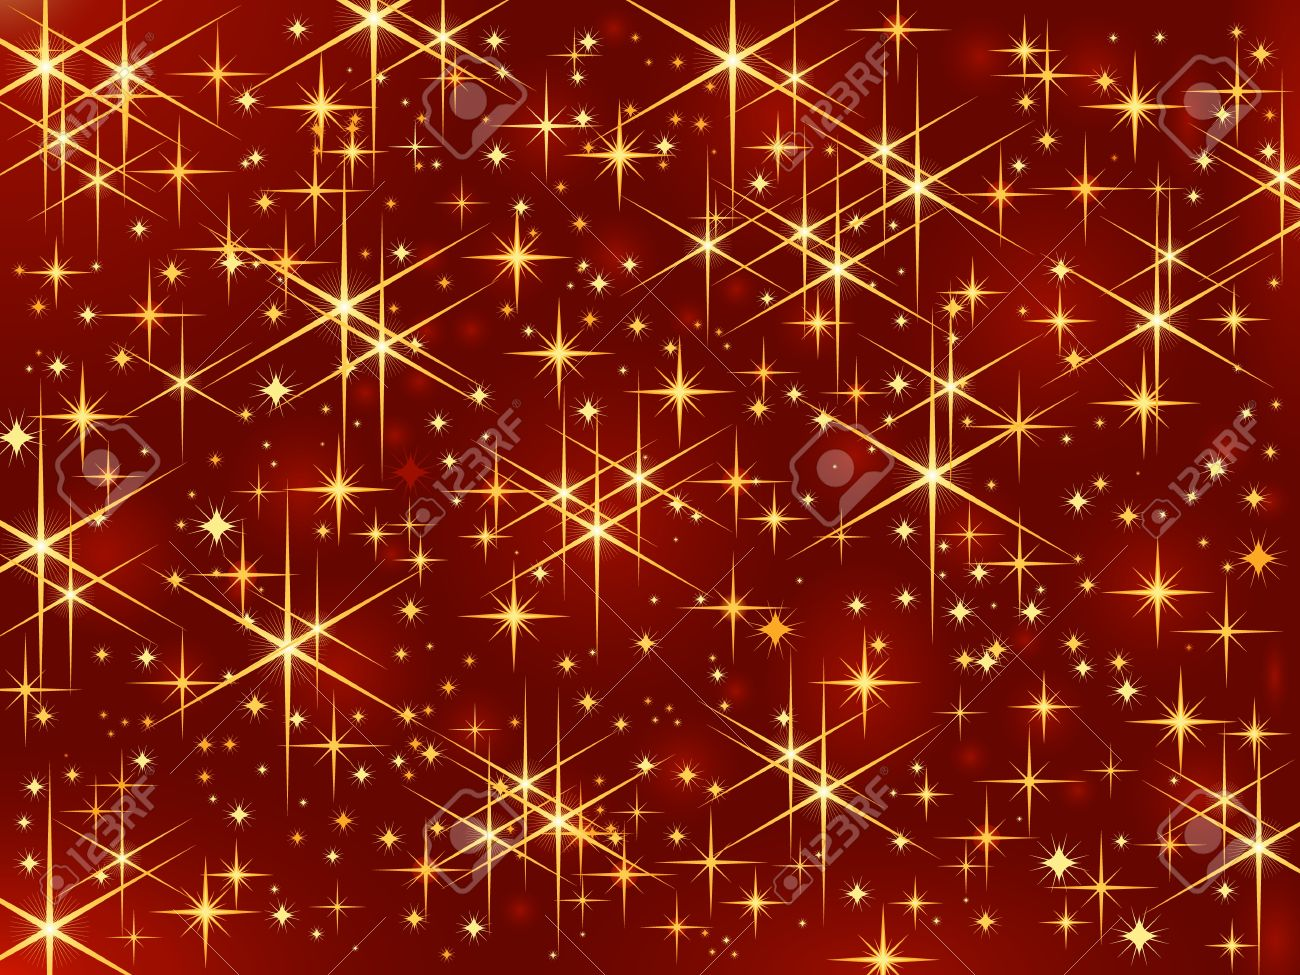 Gold Sparkles Clipart Gold Sparkle Dark Red